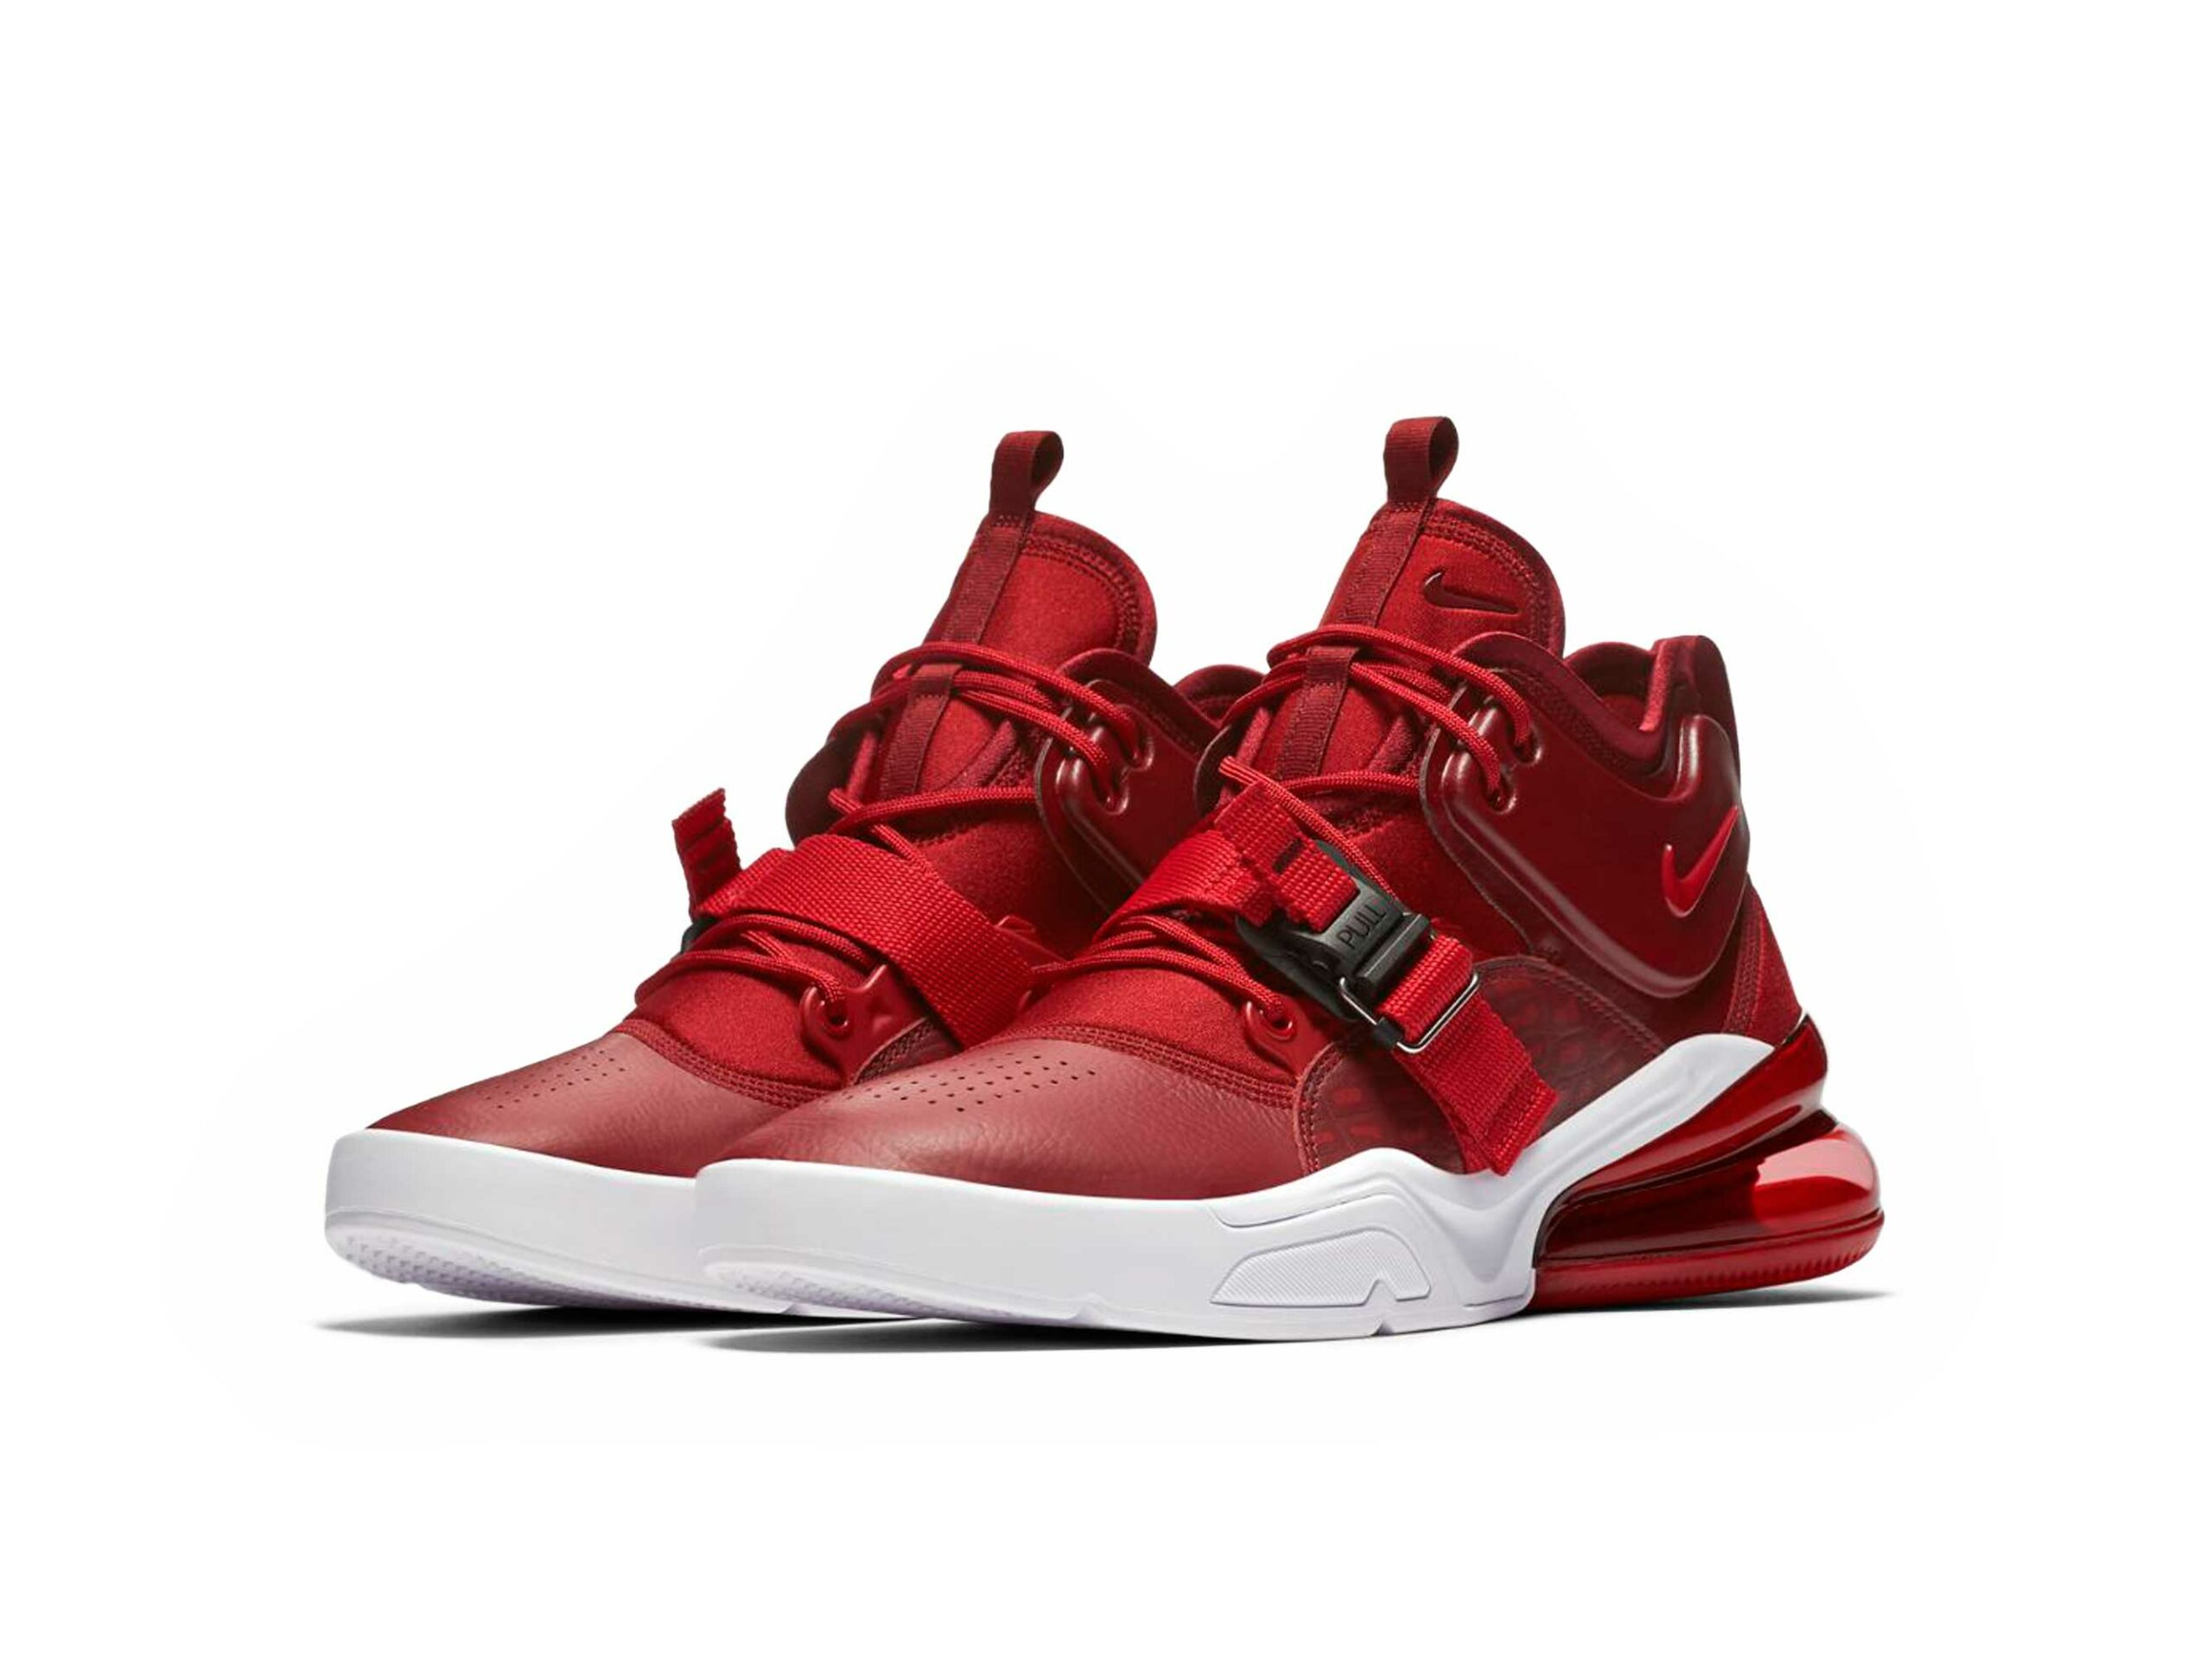 nike air force 270 rubby AH6772_600 купить